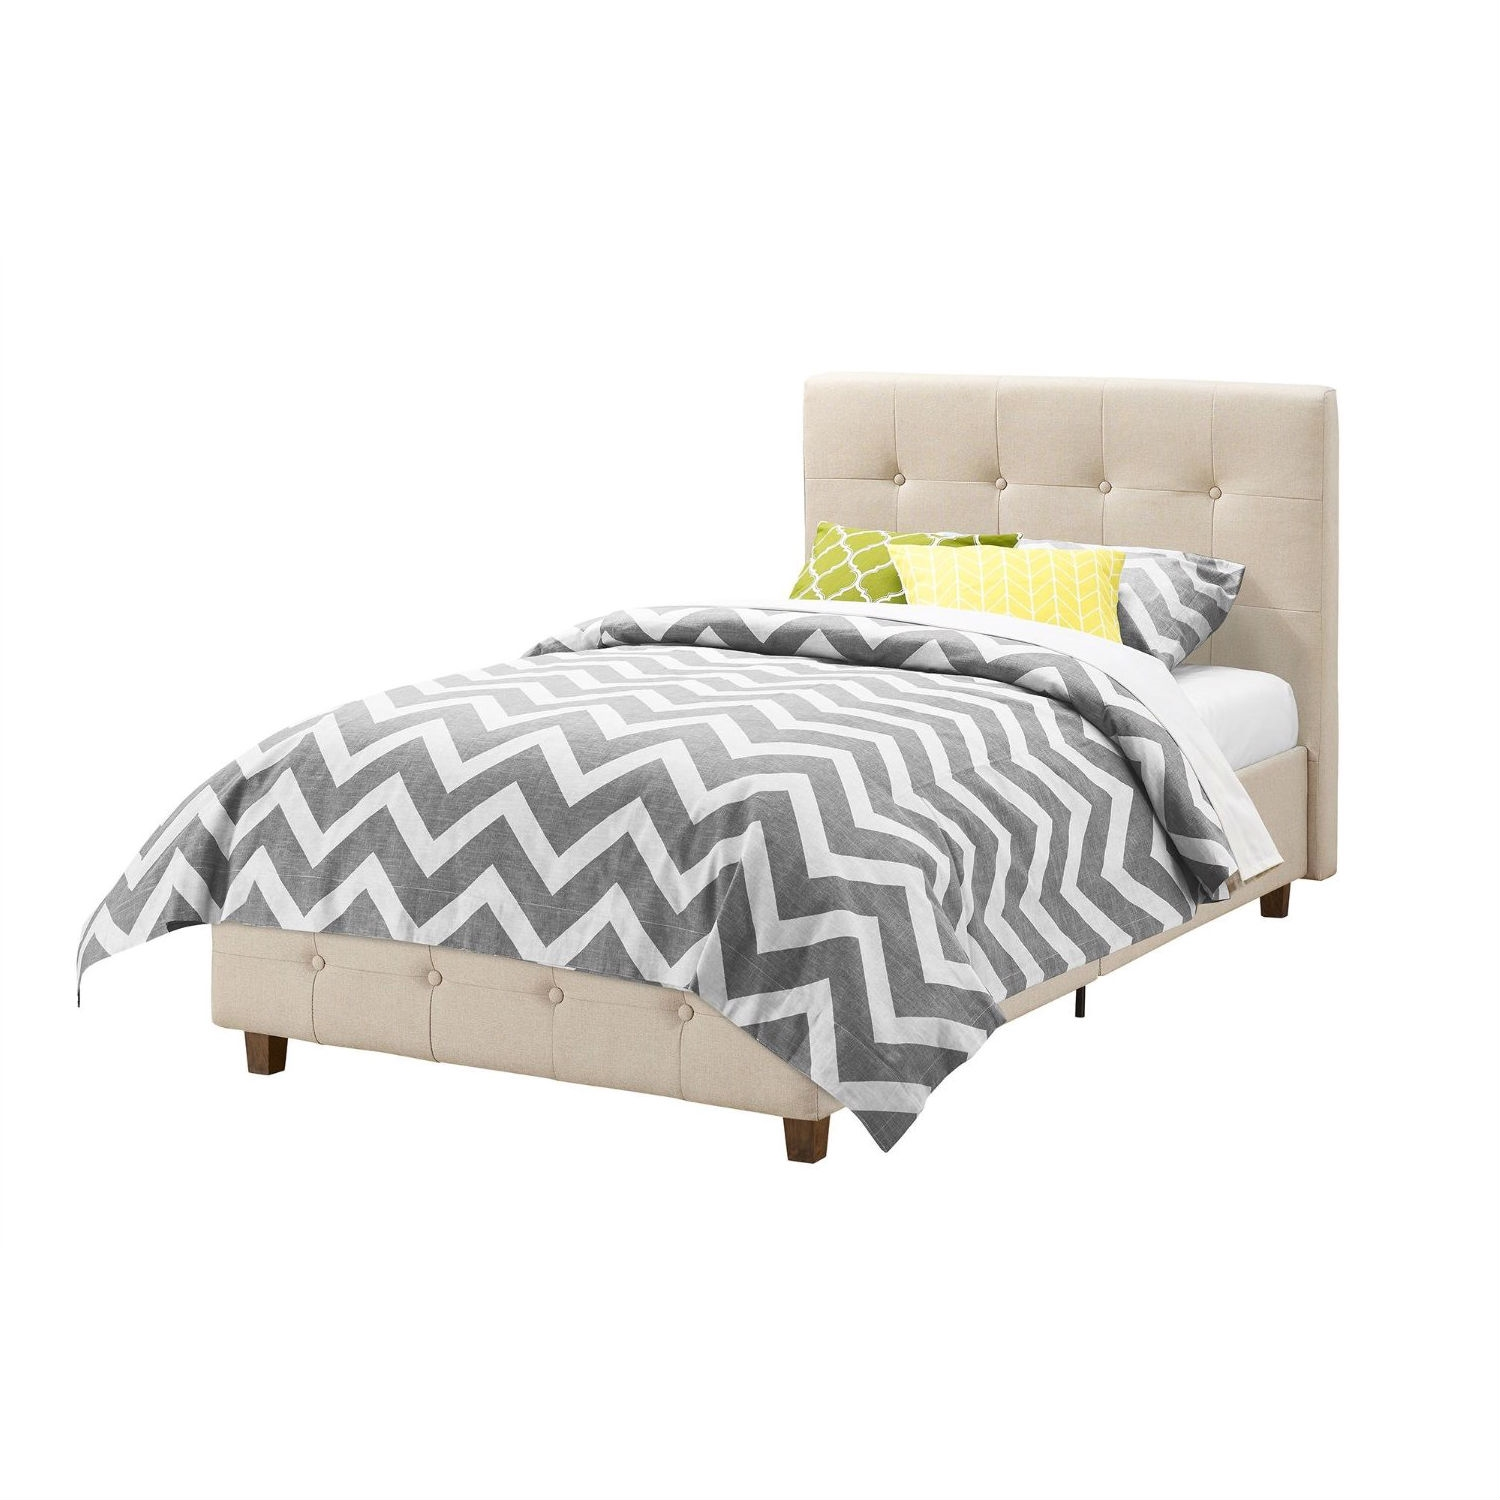 Twin Size Tan Linen Upholstered Platform Bed Frame With Button Tufted Headboard